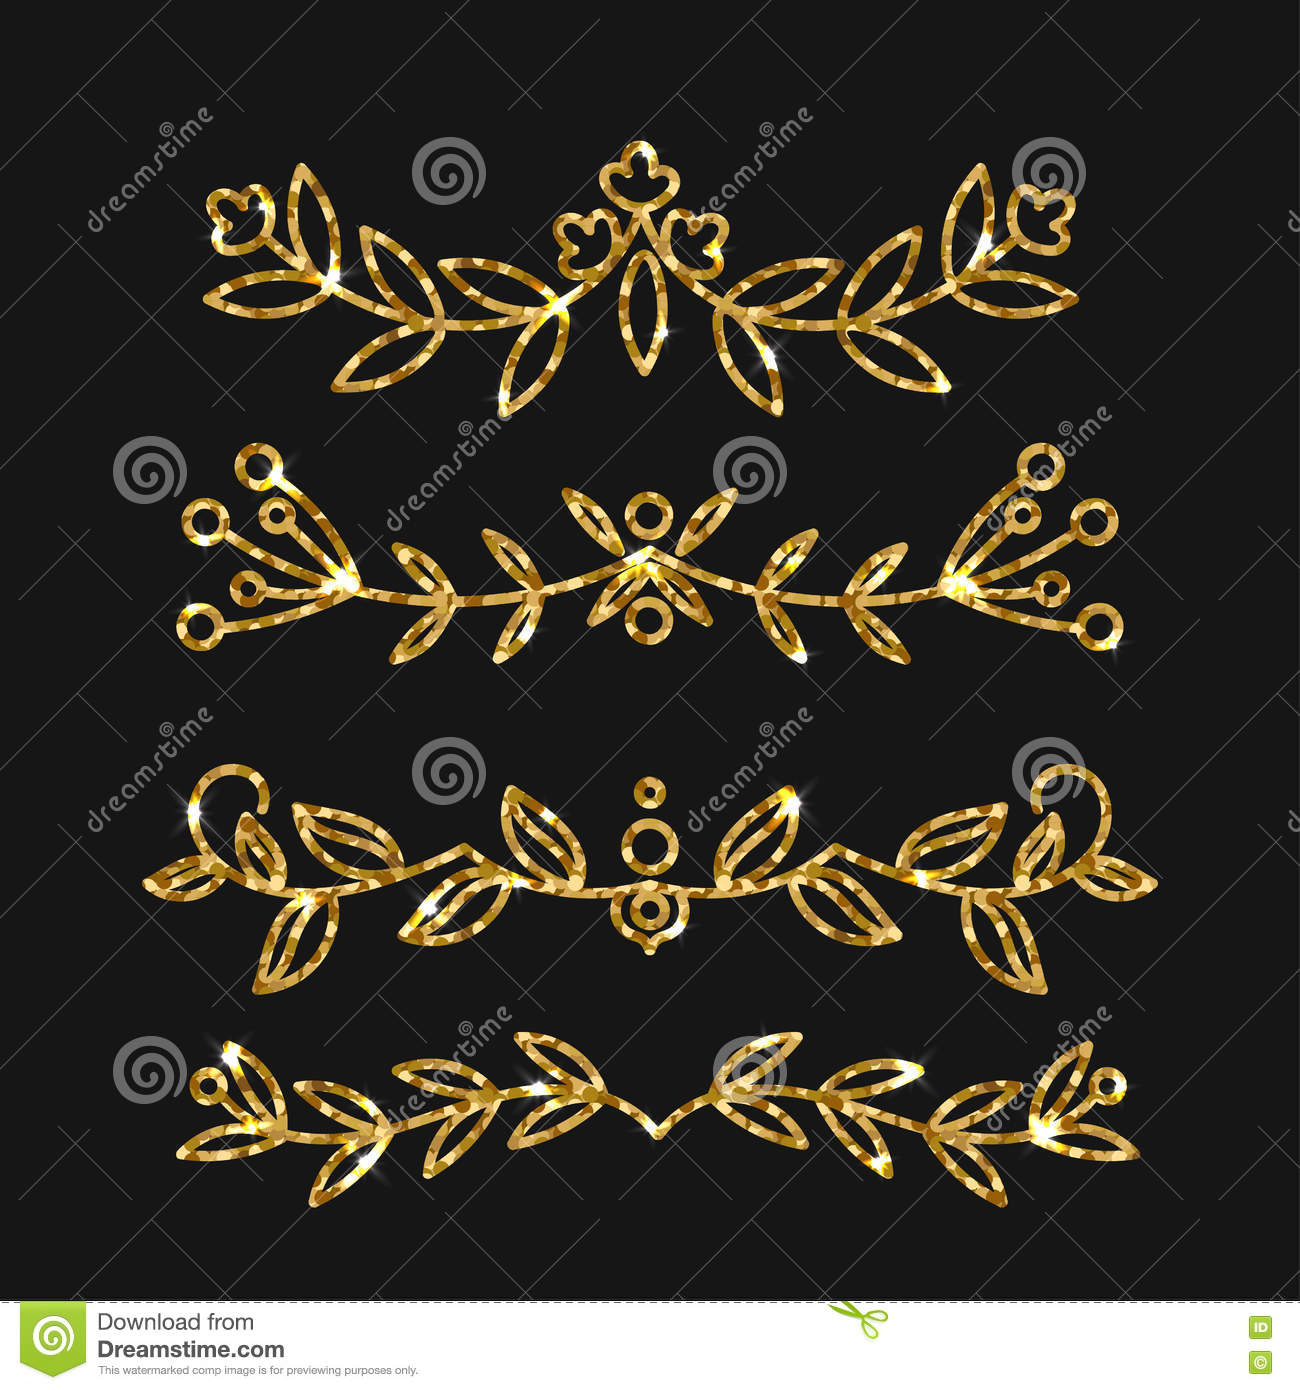 ec8112494c2c Dividers set. Vector gold ornate design. Golden flourishes. Hand drawn  decorative swirls with glitter effect. Calligraphic decorations with  sparkles.